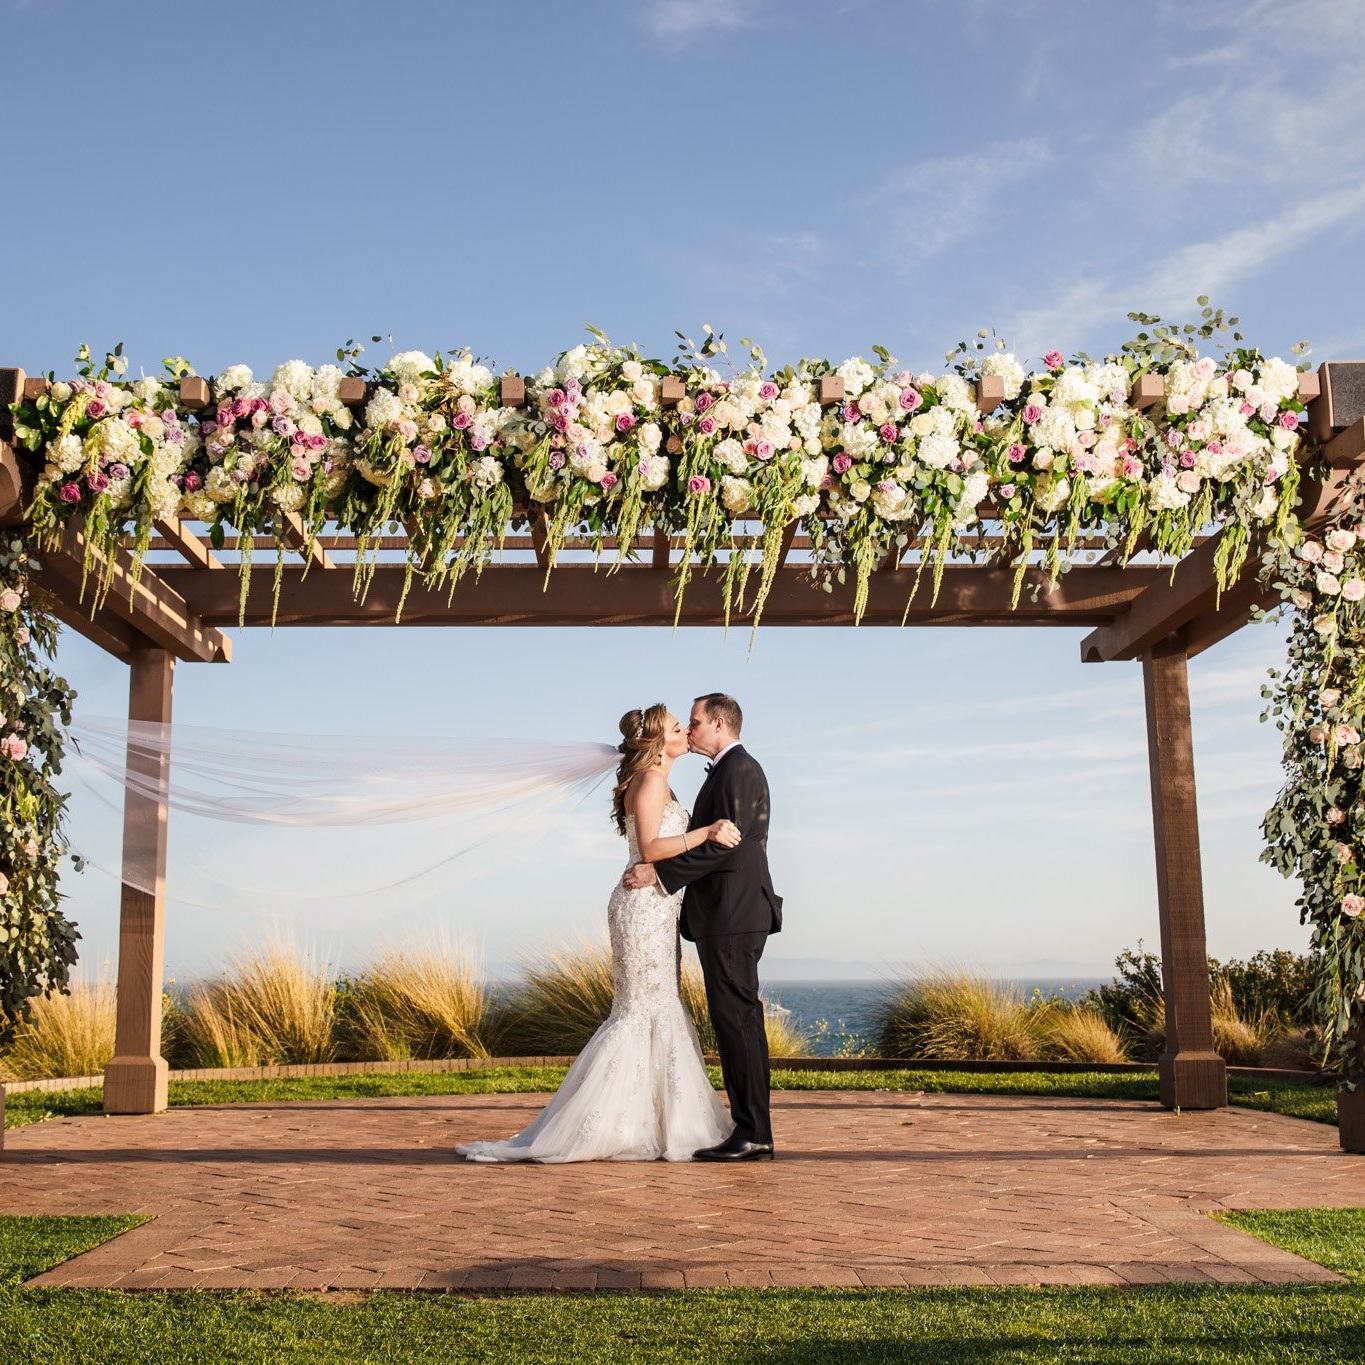 18-Terranea-Resort-Rancho-Palos-Verdes-Wedding-Photography.jpg